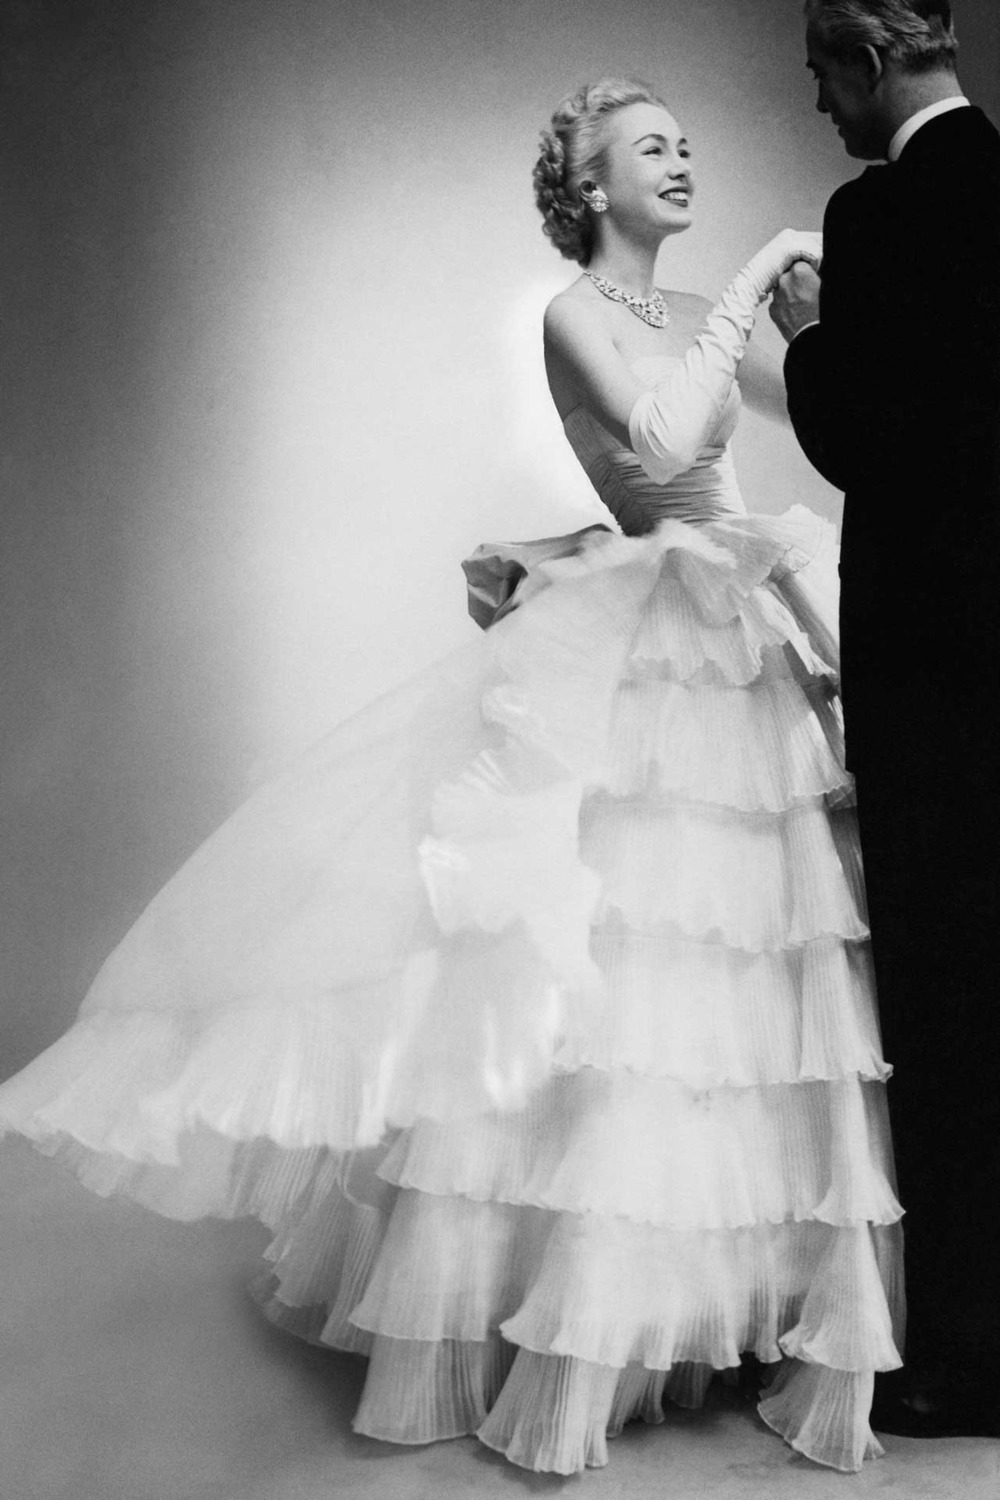 Belle of the Ball in Balenciaga. Vogue 1951. Photographer unknown.